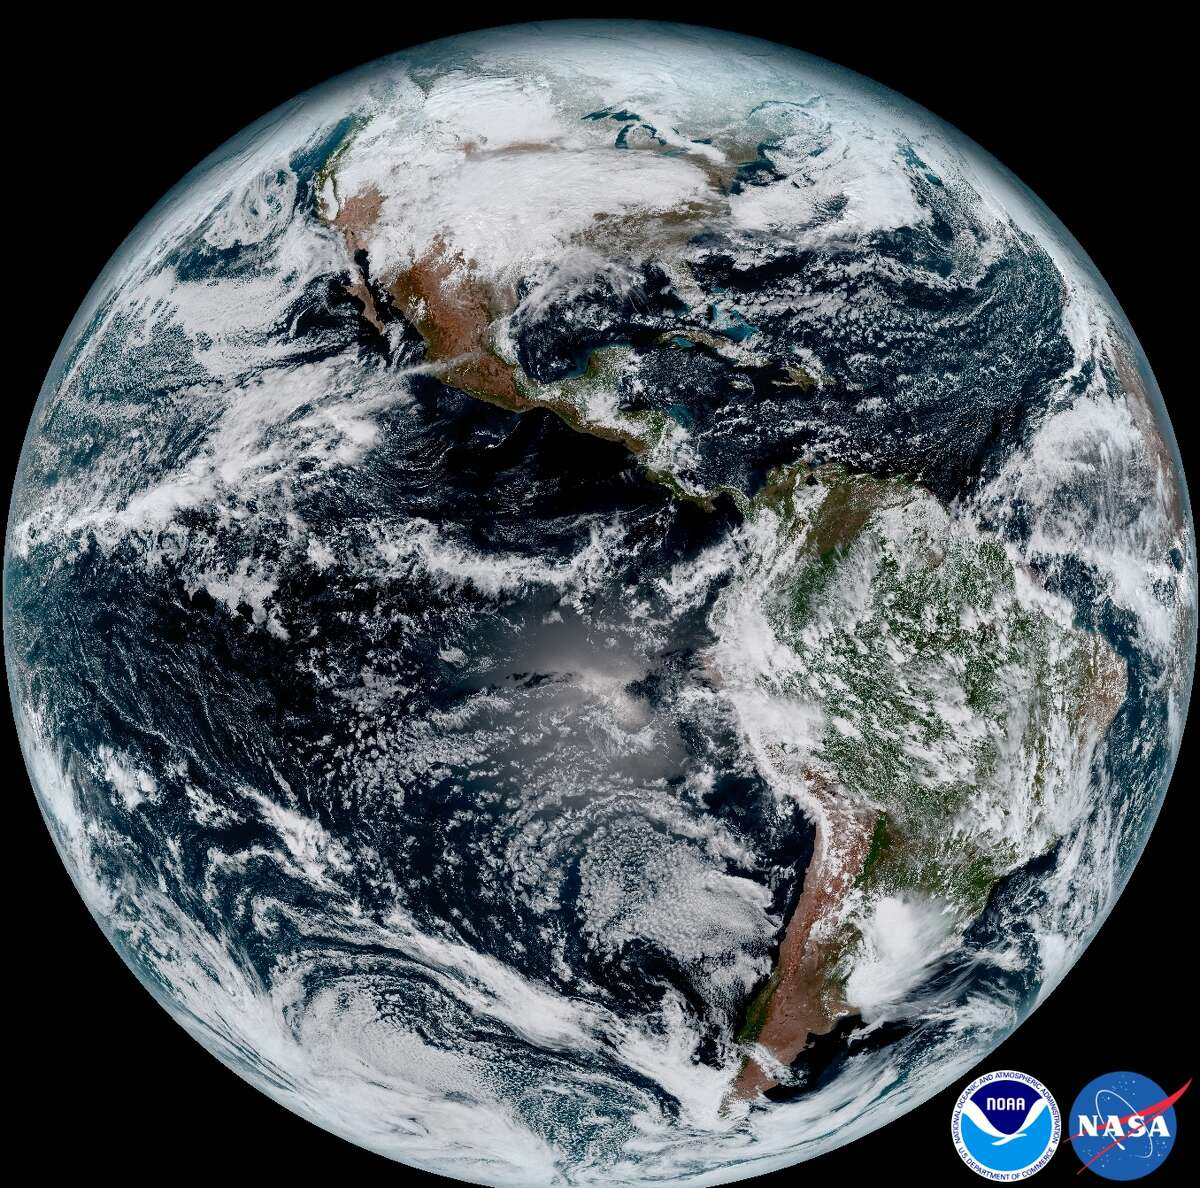 PHOTOS: Government's newest weather satellite Recent images of Earth taken by GOES-16, the National Oceanic and Atmospheric Administration's newest weather satellite. Click through to see the first images being sent back by the government's latest high-tech satellite.